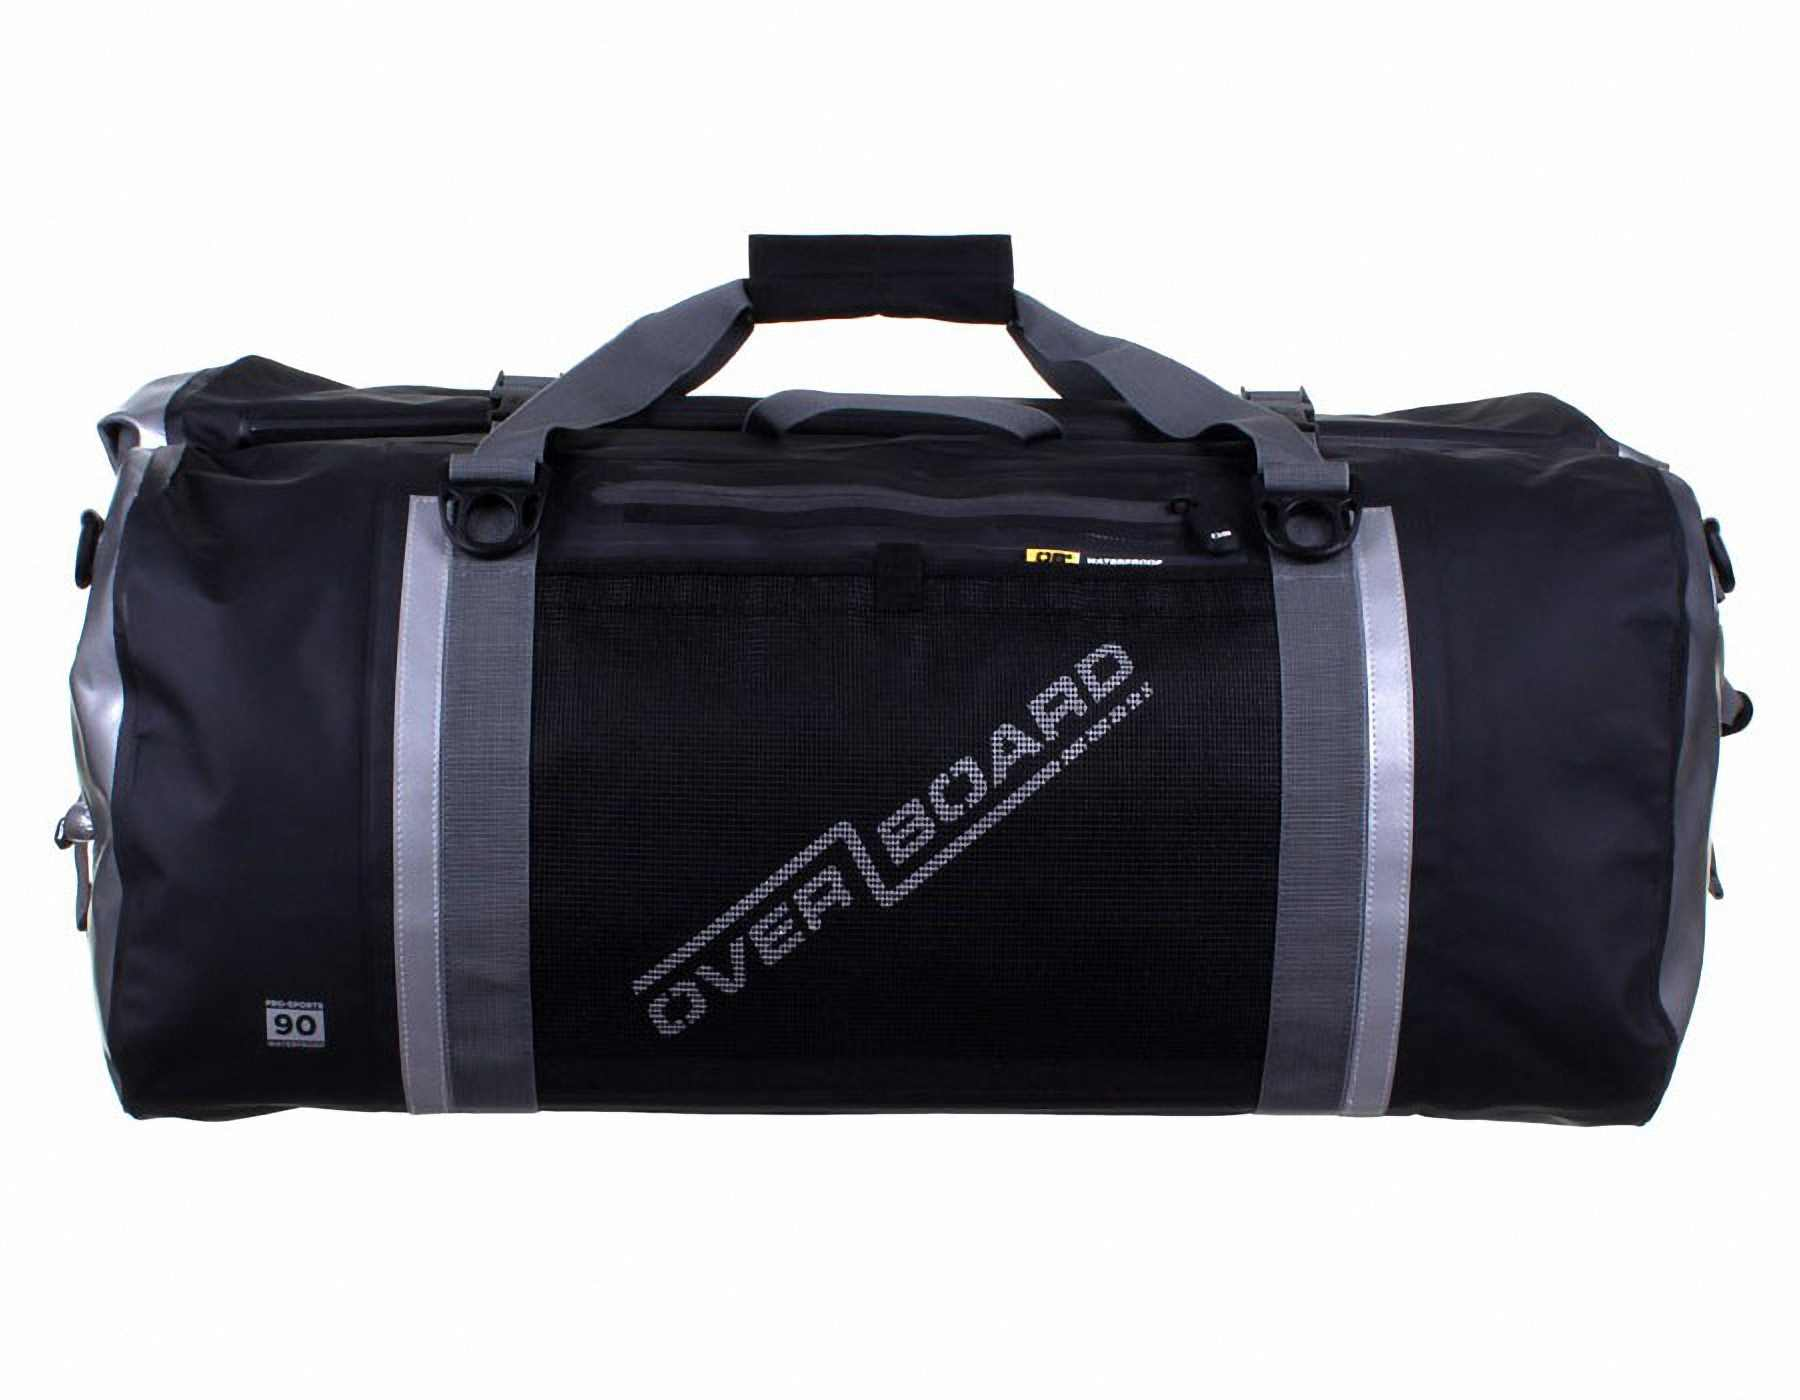 Водонепроницаемая сумка OverBoard OB1155BLK - Pro-Sports Waterproof Duffel Bag - 90 литров. Фото 1